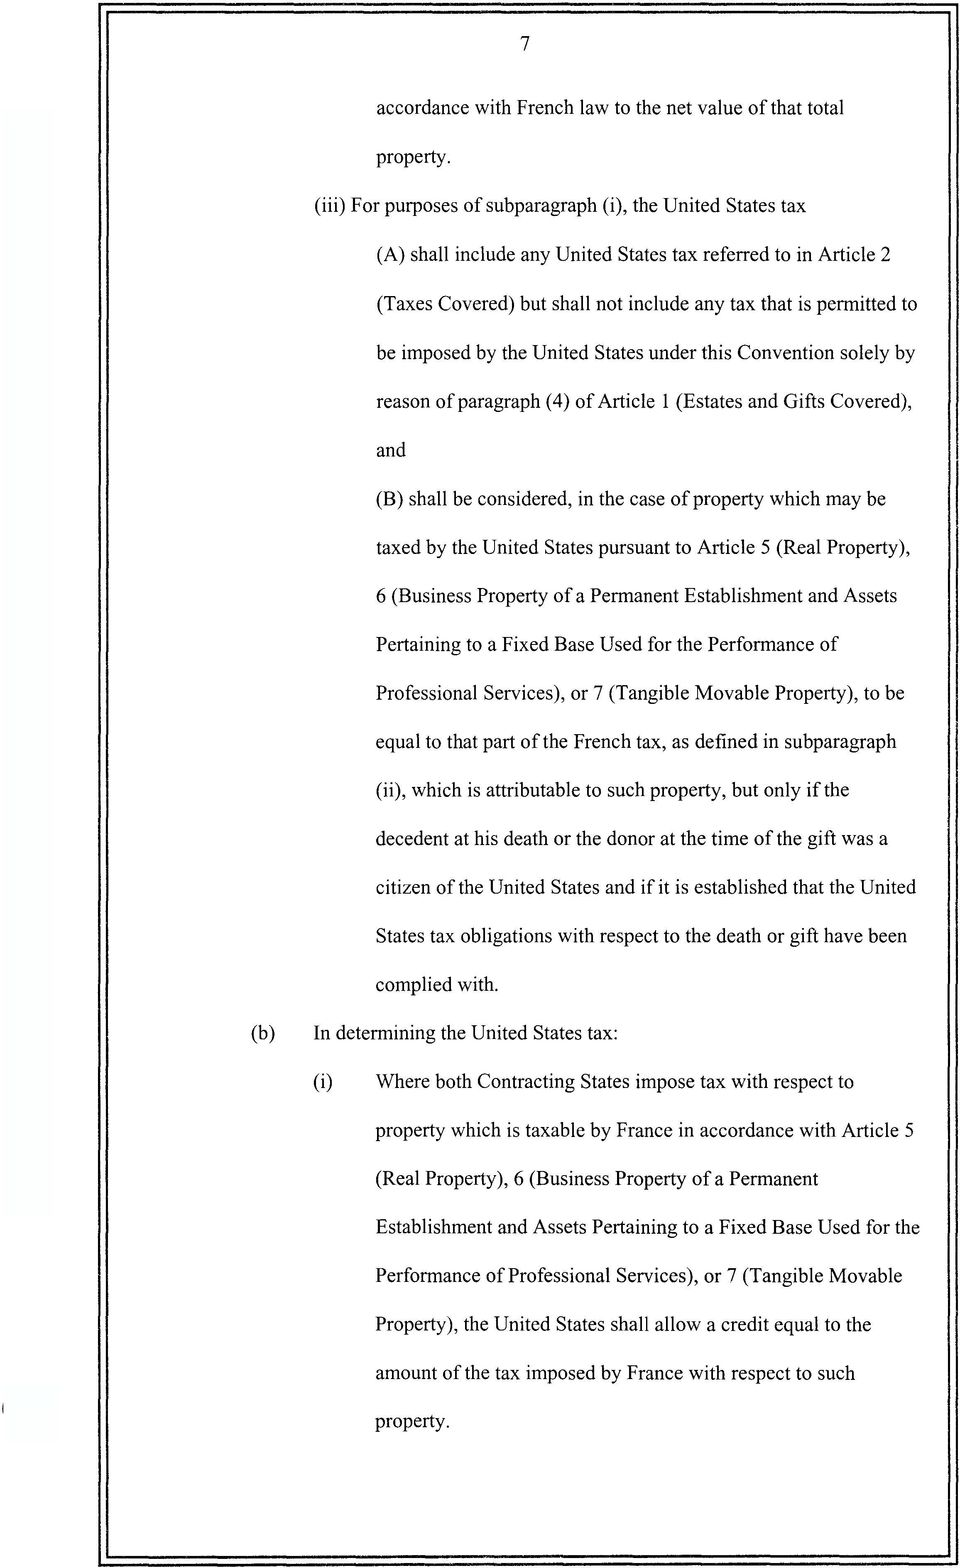 imposed by the United States under this Convention solely by reason of paragraph (4) of Article 1 (Estates and Gifts Covered), and (B) shall be considered, in the case of property which may be taxed